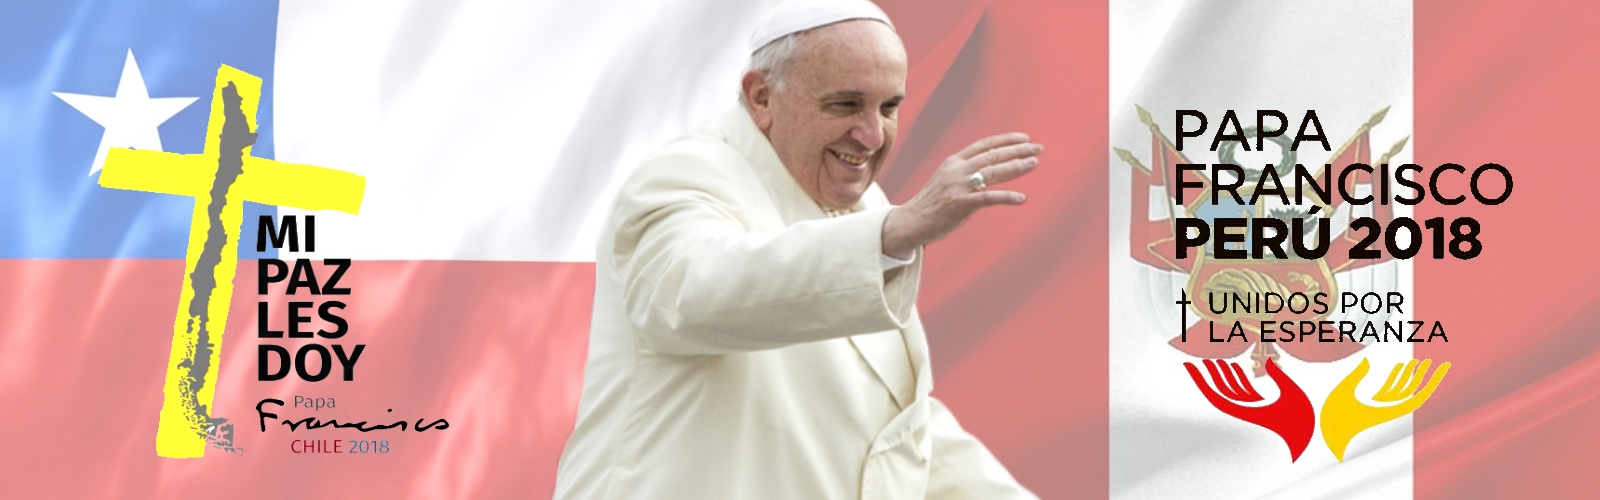 papafrancisco_chileyperu